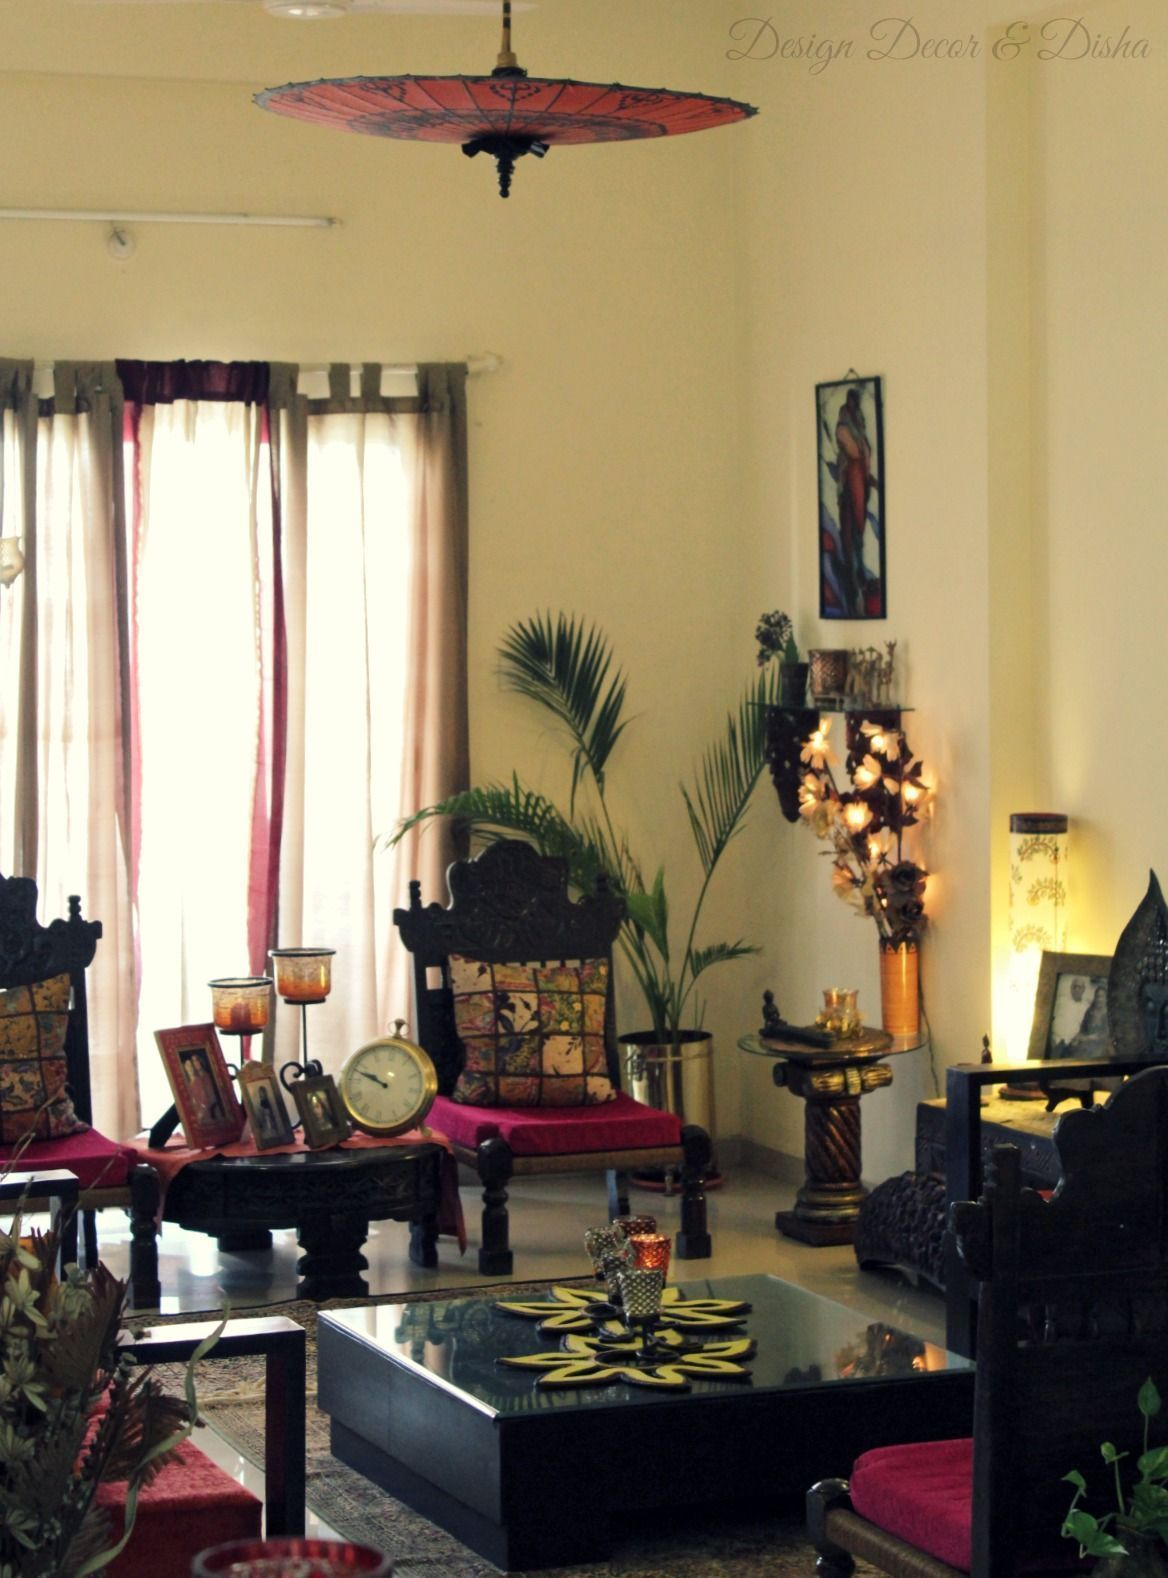 living room decorative items india farmhouse style ideas 14 amazing designs indian interior and home decor indianhomedecor